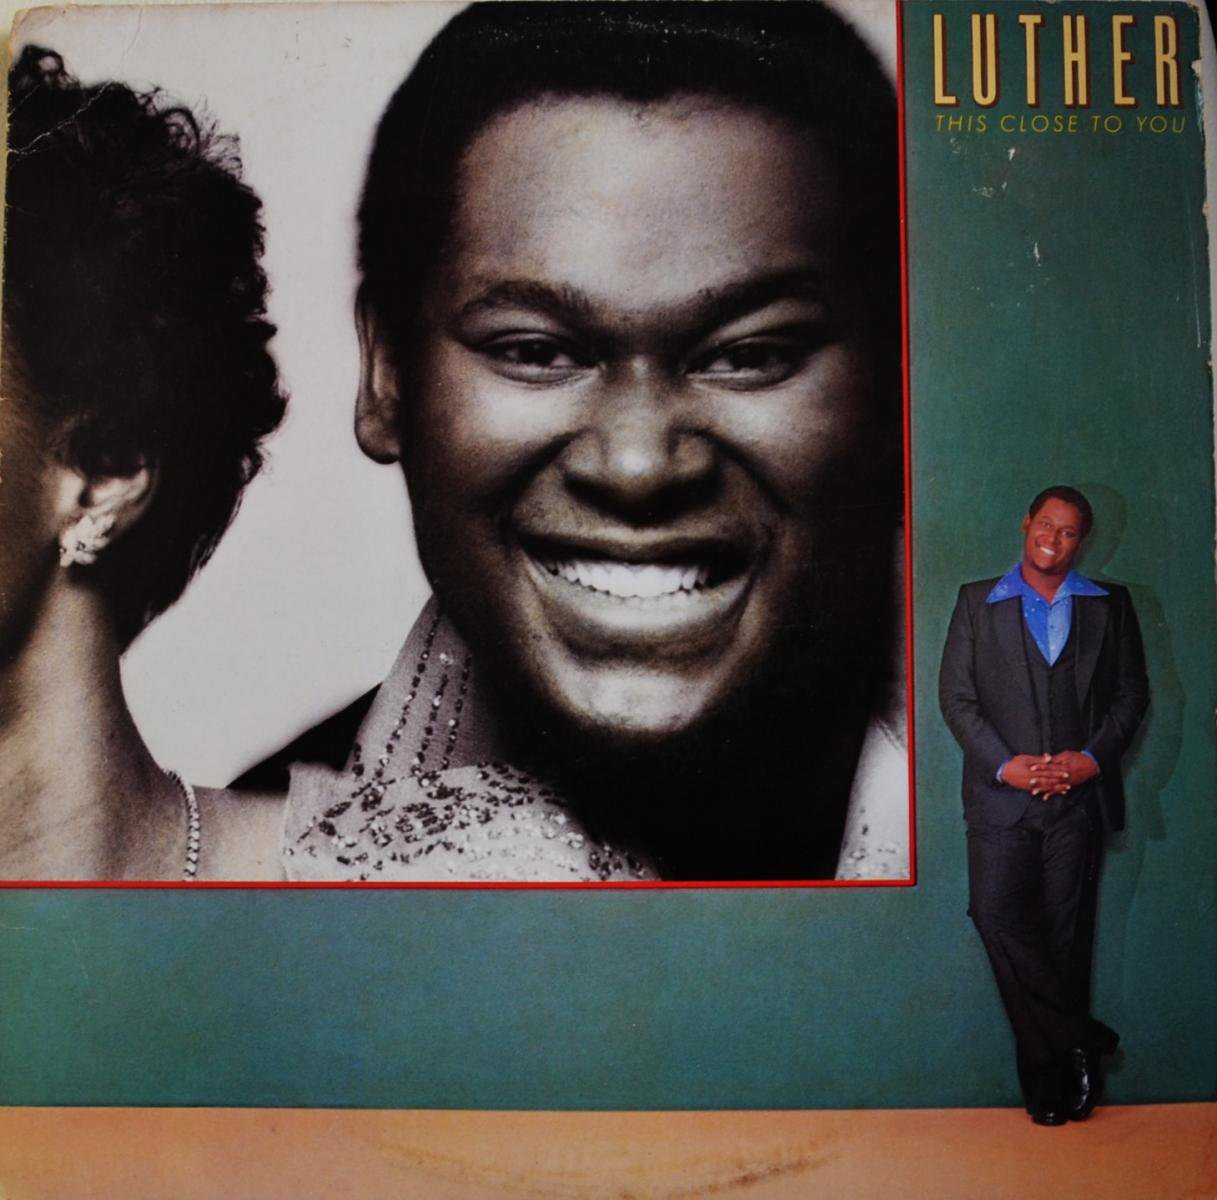 LUTHER / THIS CLOSE TO YOU (LP)